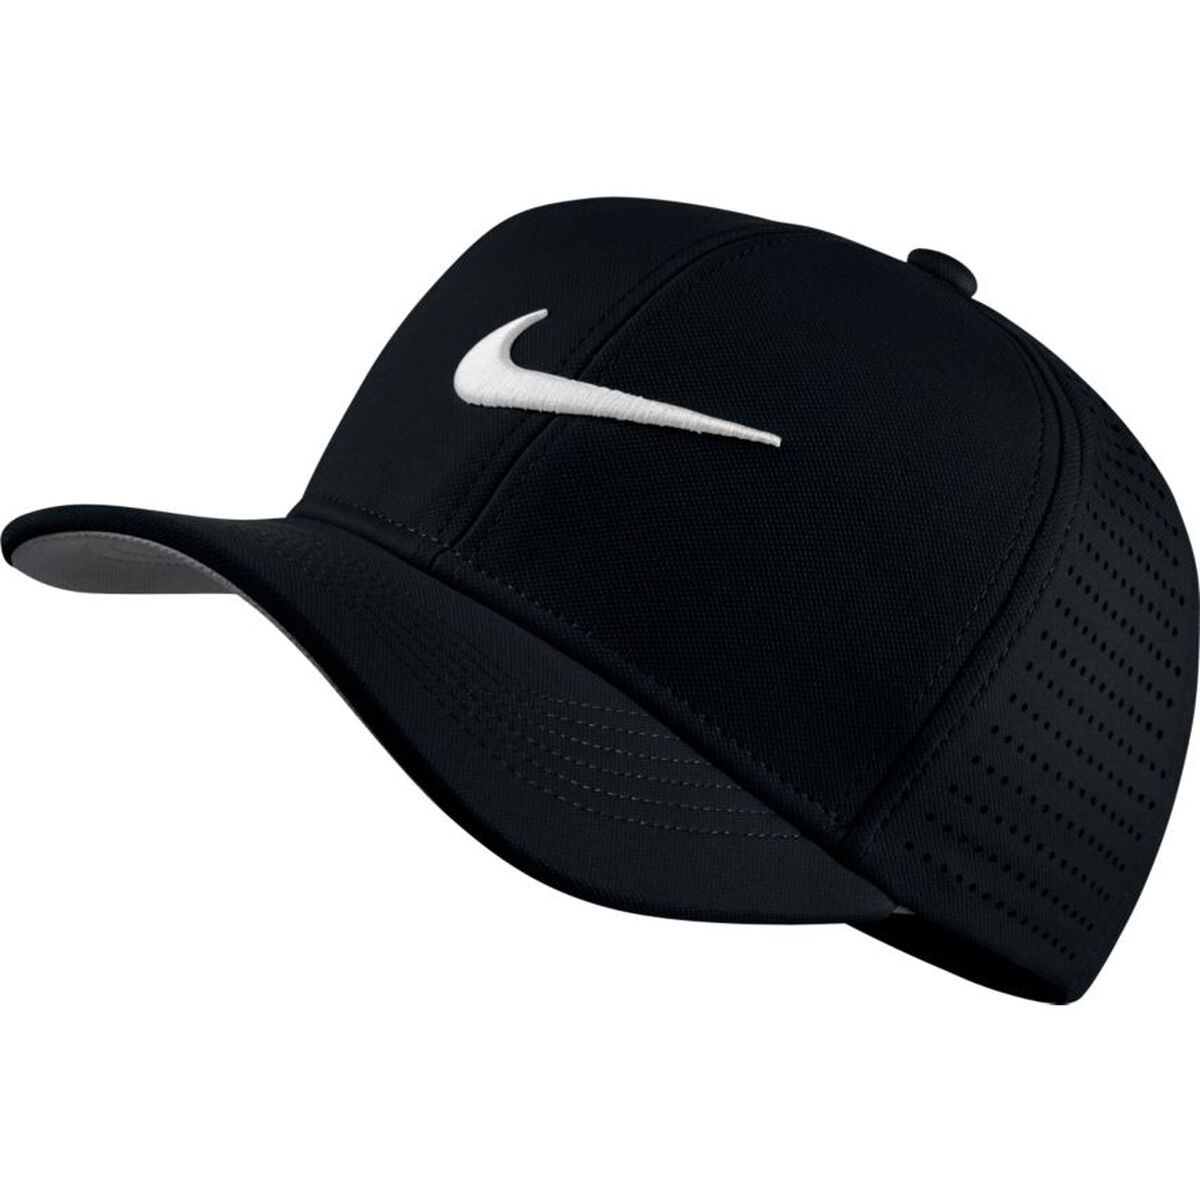 a665a88fb57 Images. Nike Kids  39  AeroBill Classic99 Golf Hat